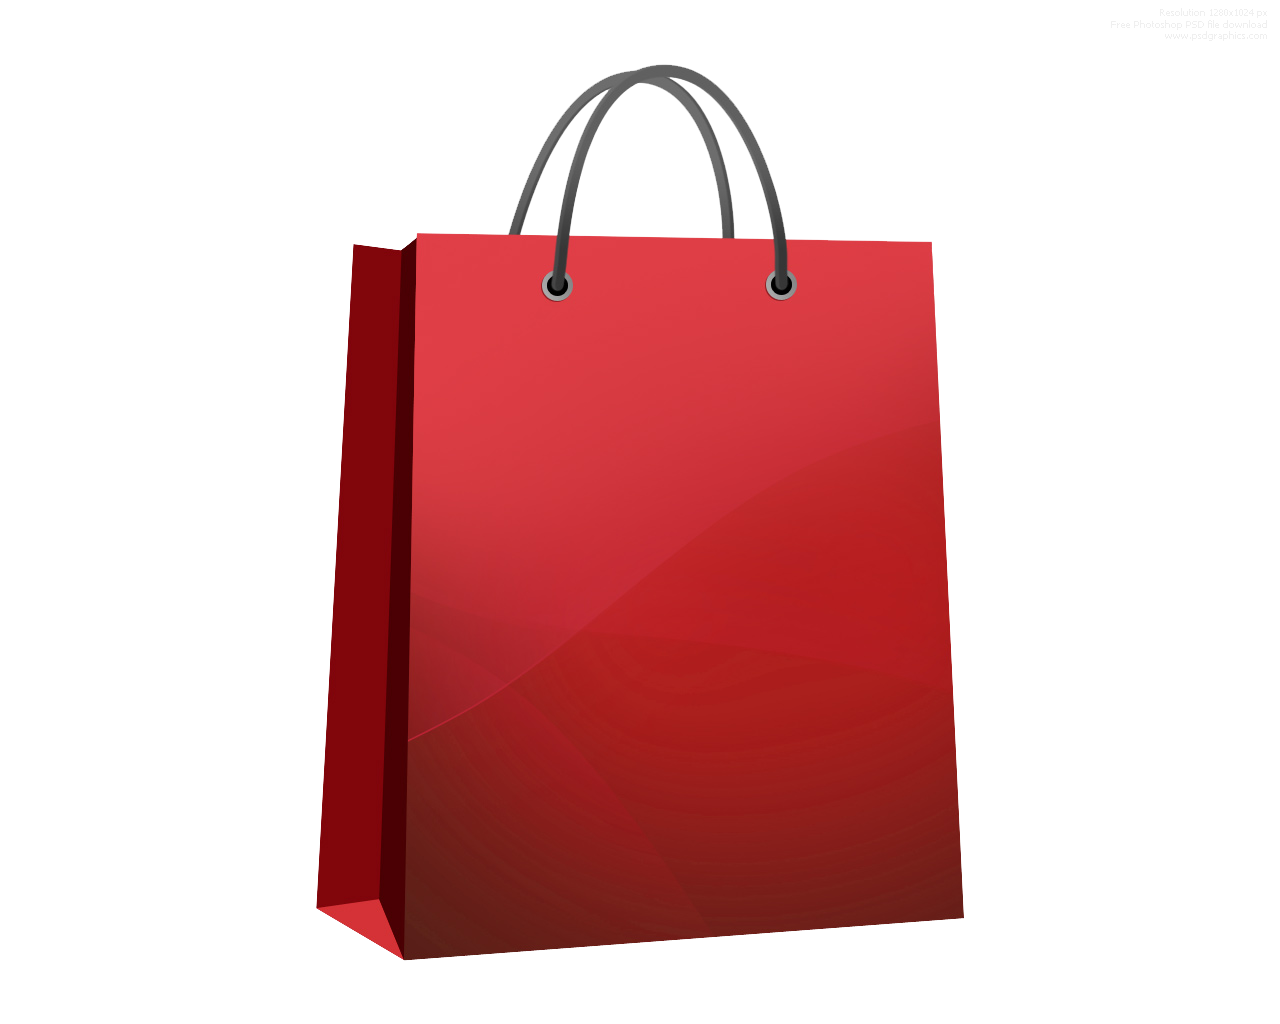 shopping bag png transparent shopping bagpng images